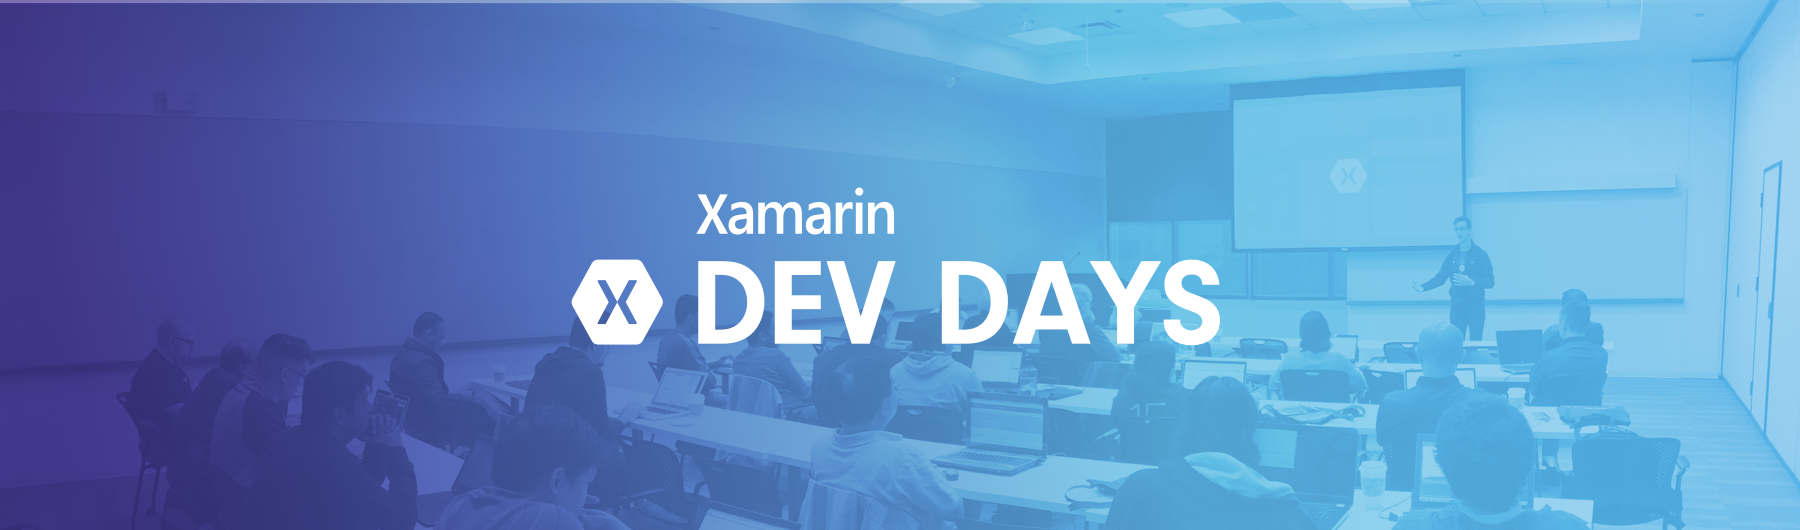 Xamarin Dev Days - Kyiv